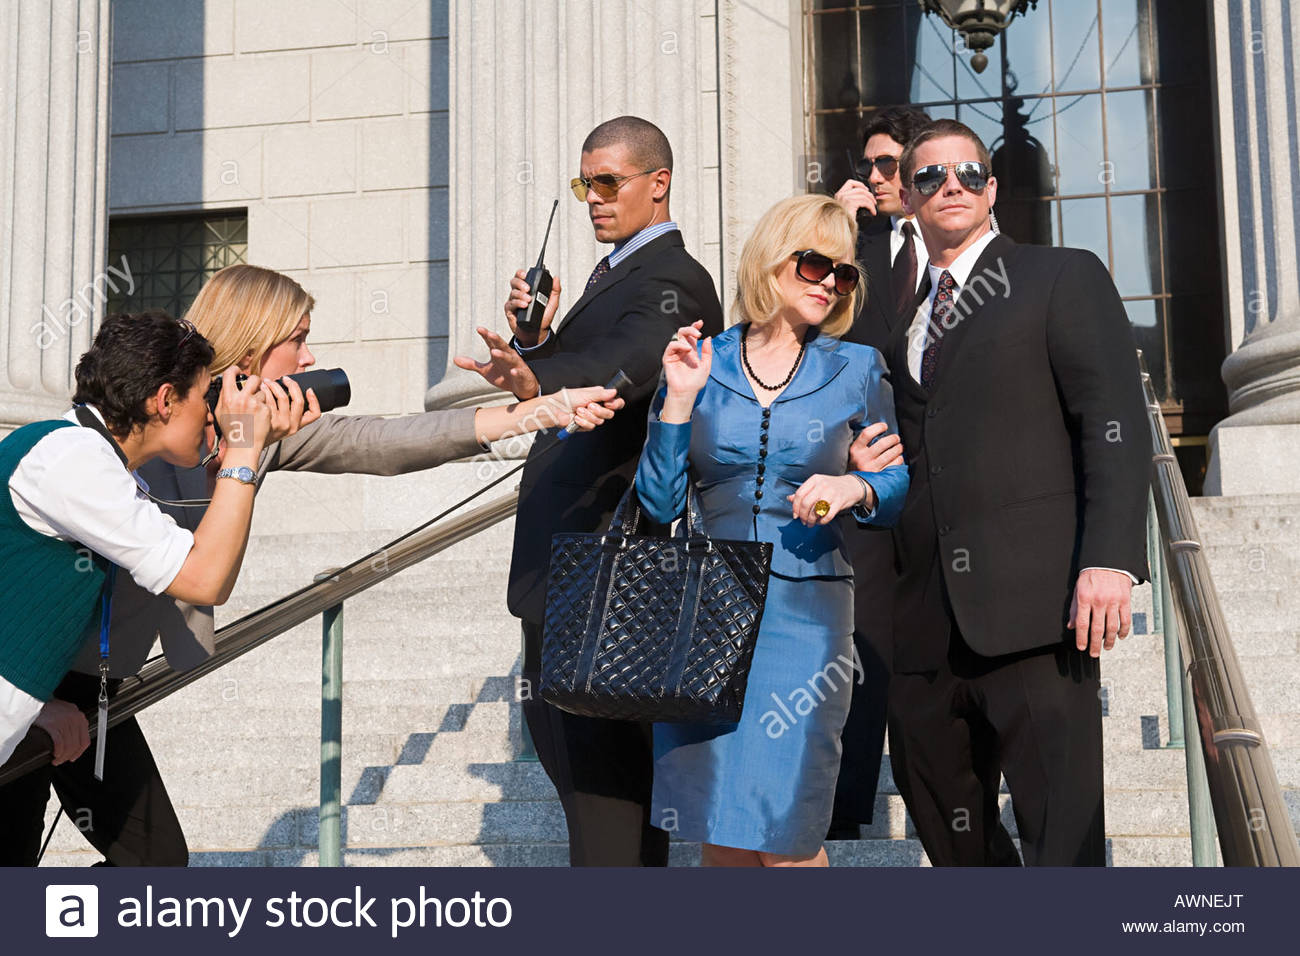 Body guards protecting a woman - Stock Image